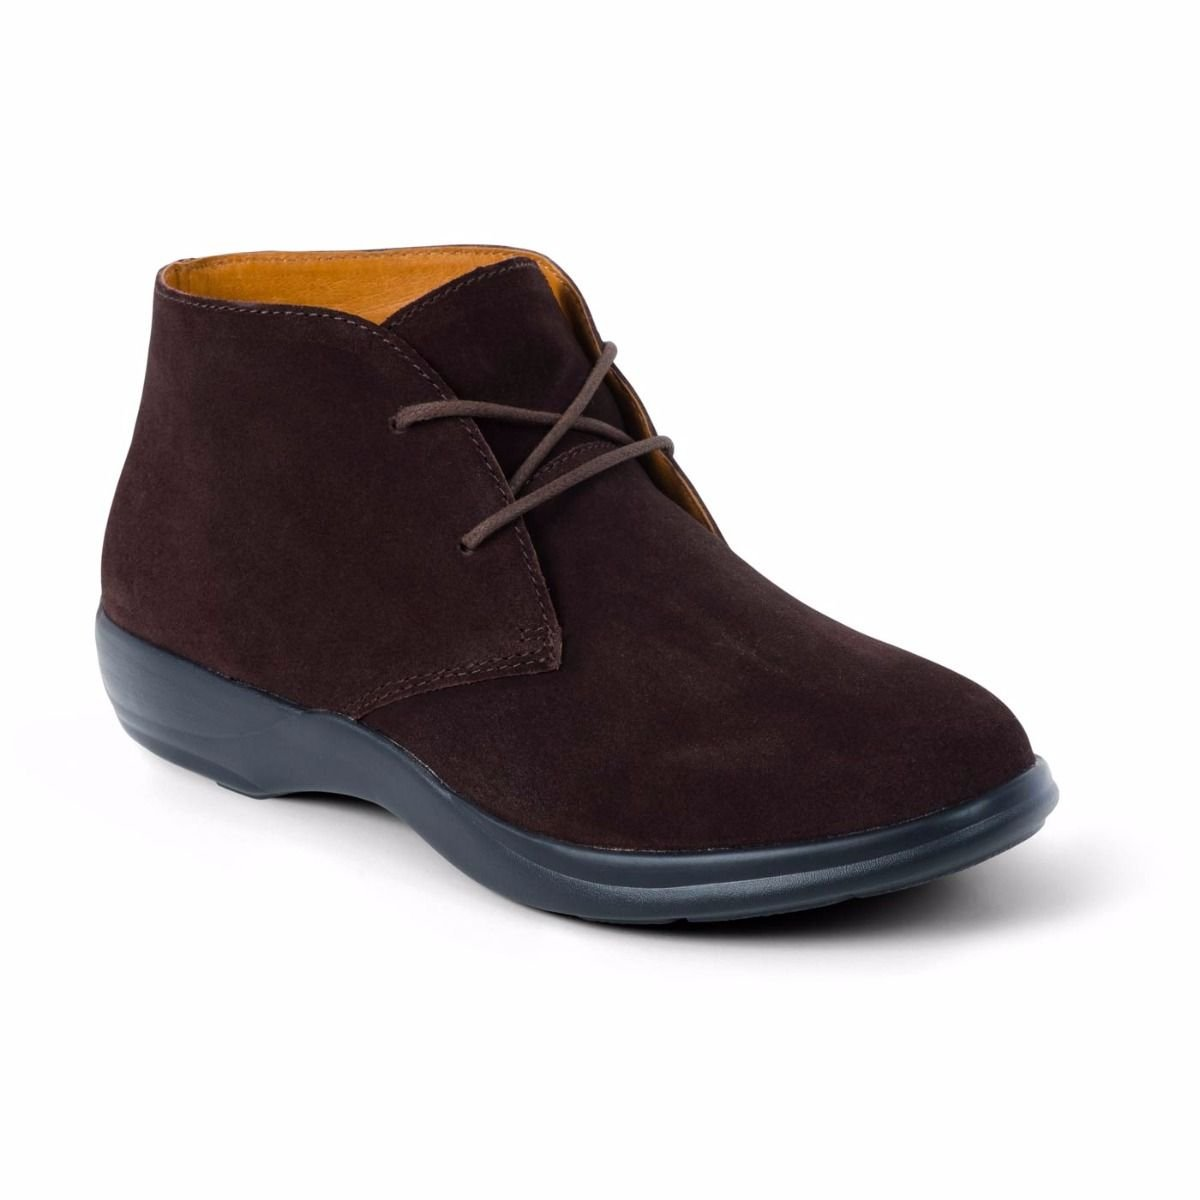 Dr. Comfort Women's Cara Casual Suede Leather Bootie Chukka Boot Brown B076VYPR23 10 WIDE (C/D) BROWN|Brown